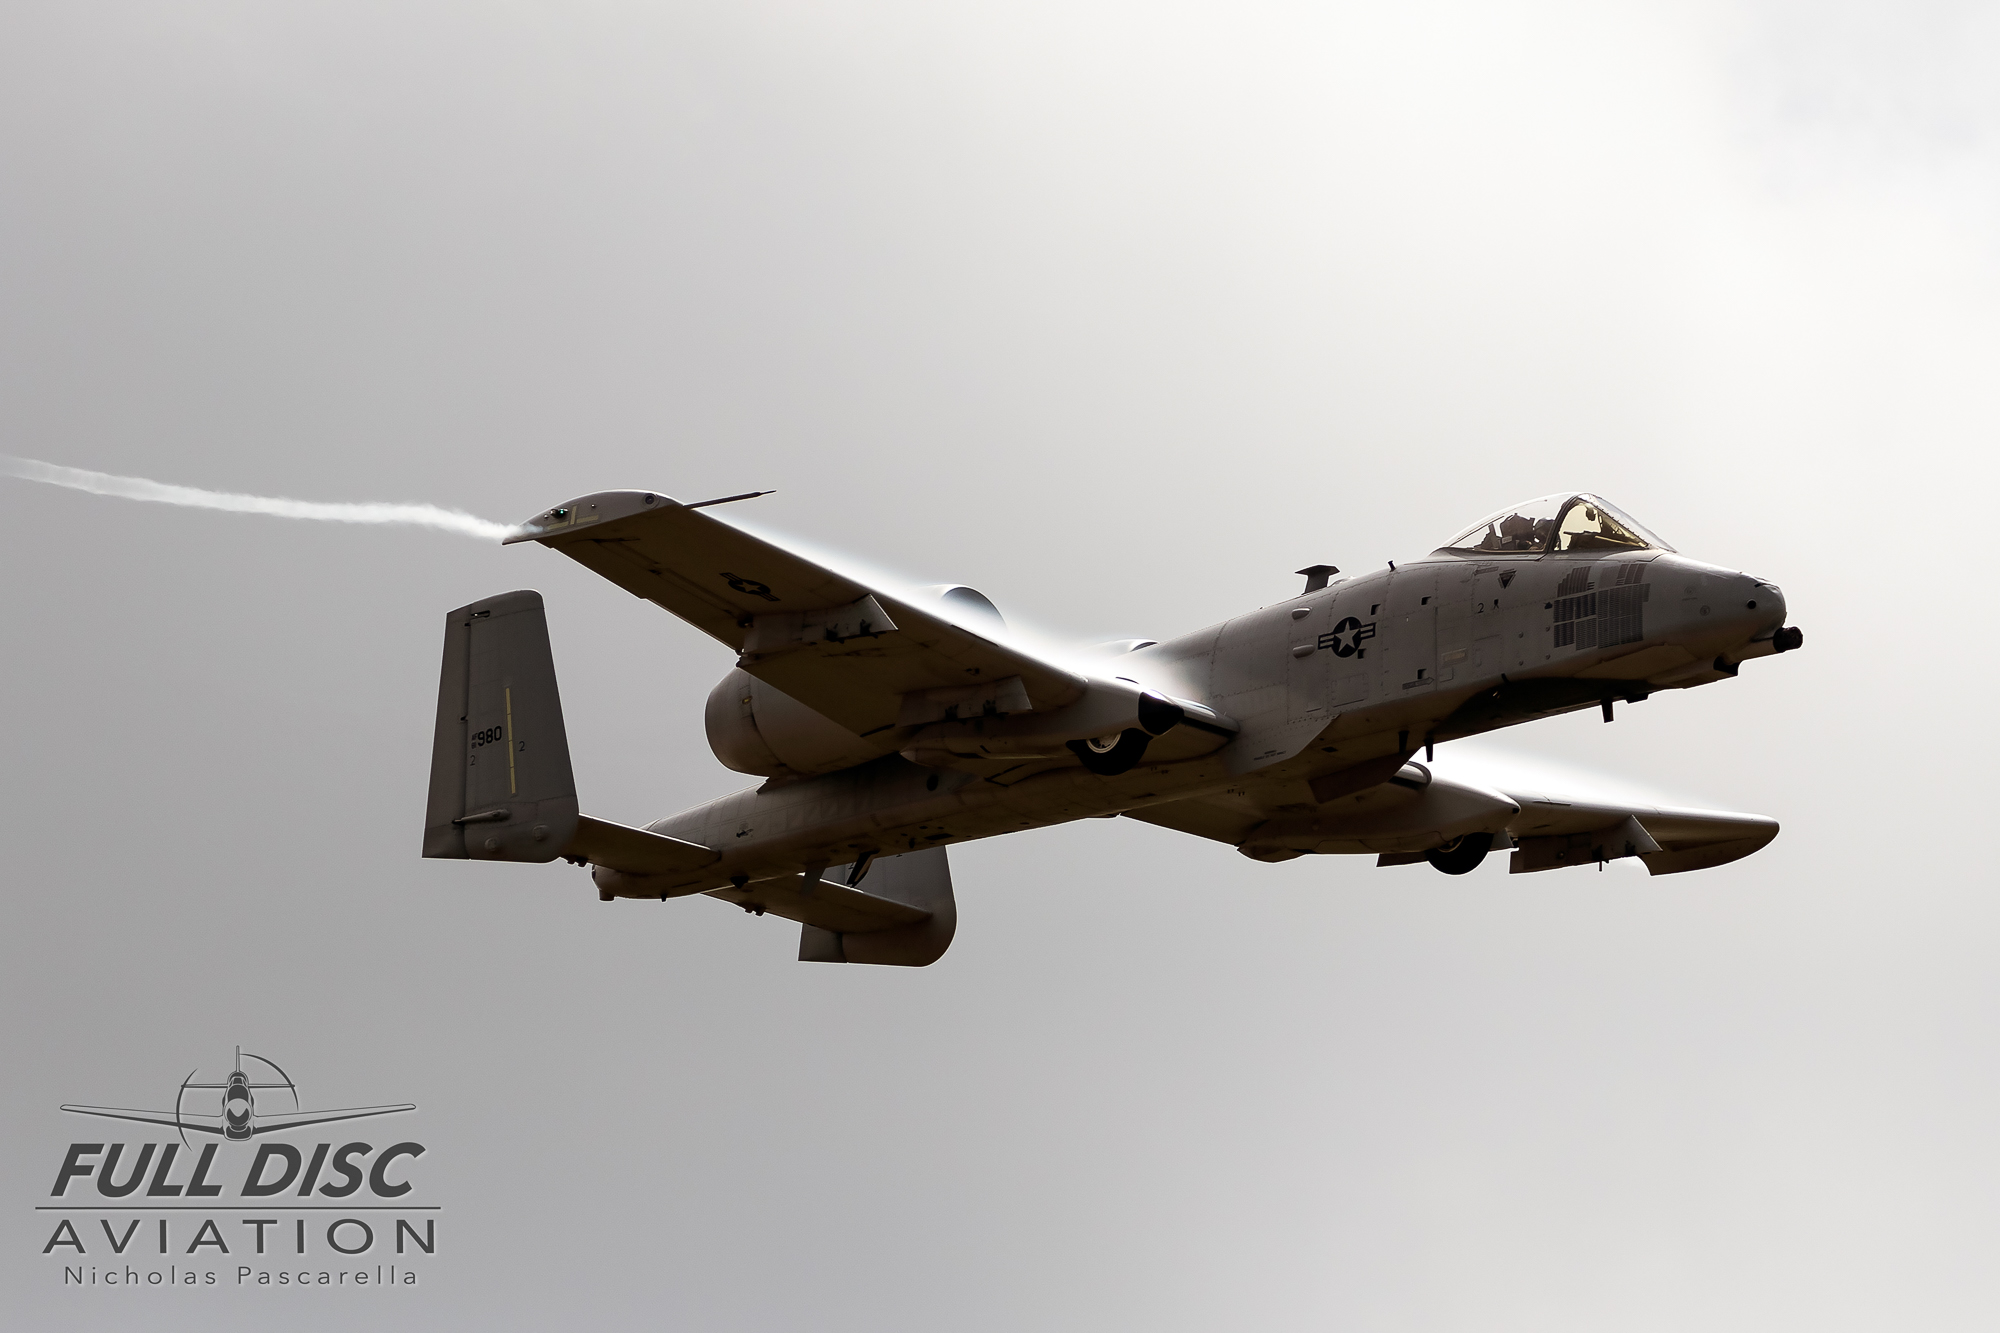 a10demoteam_a10_warthog_vapor__aviation__nickpascarella_nicholaspascarella_fulldiscaviation_leasewebmanassasairshow.jpg